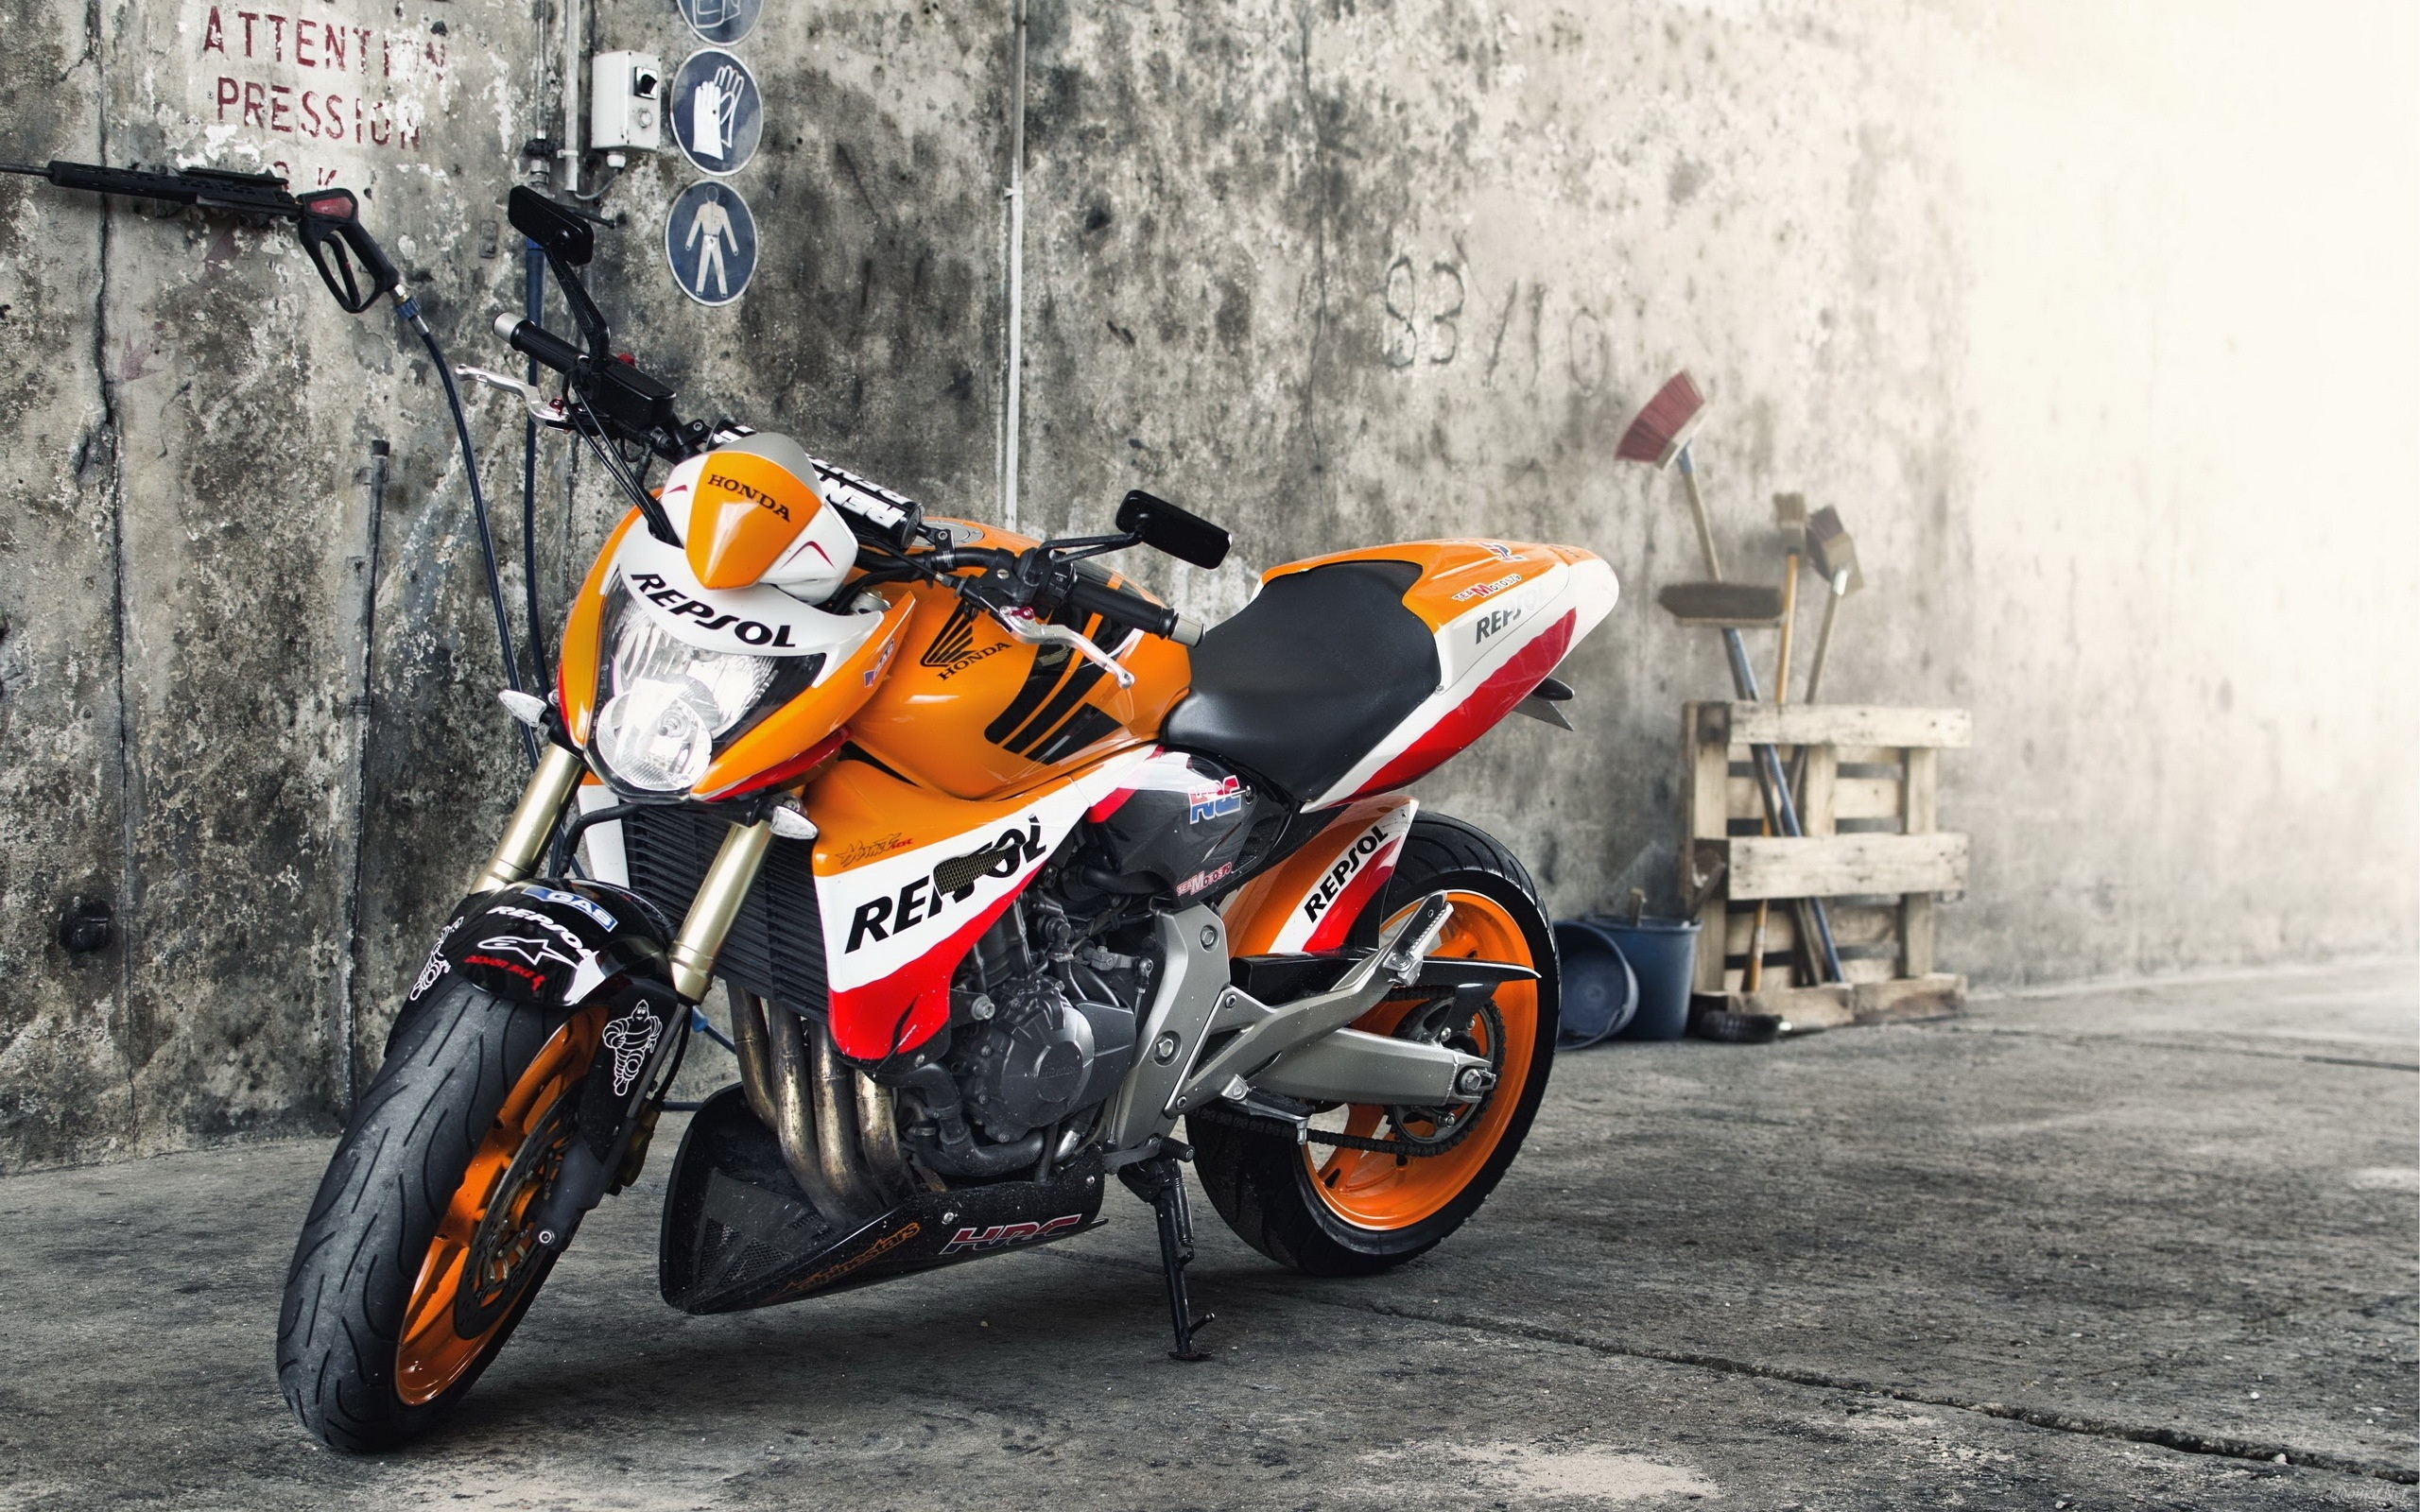 Repsol Motorcycle Wallpaper Background 49637 2560x1600px 2560x1600